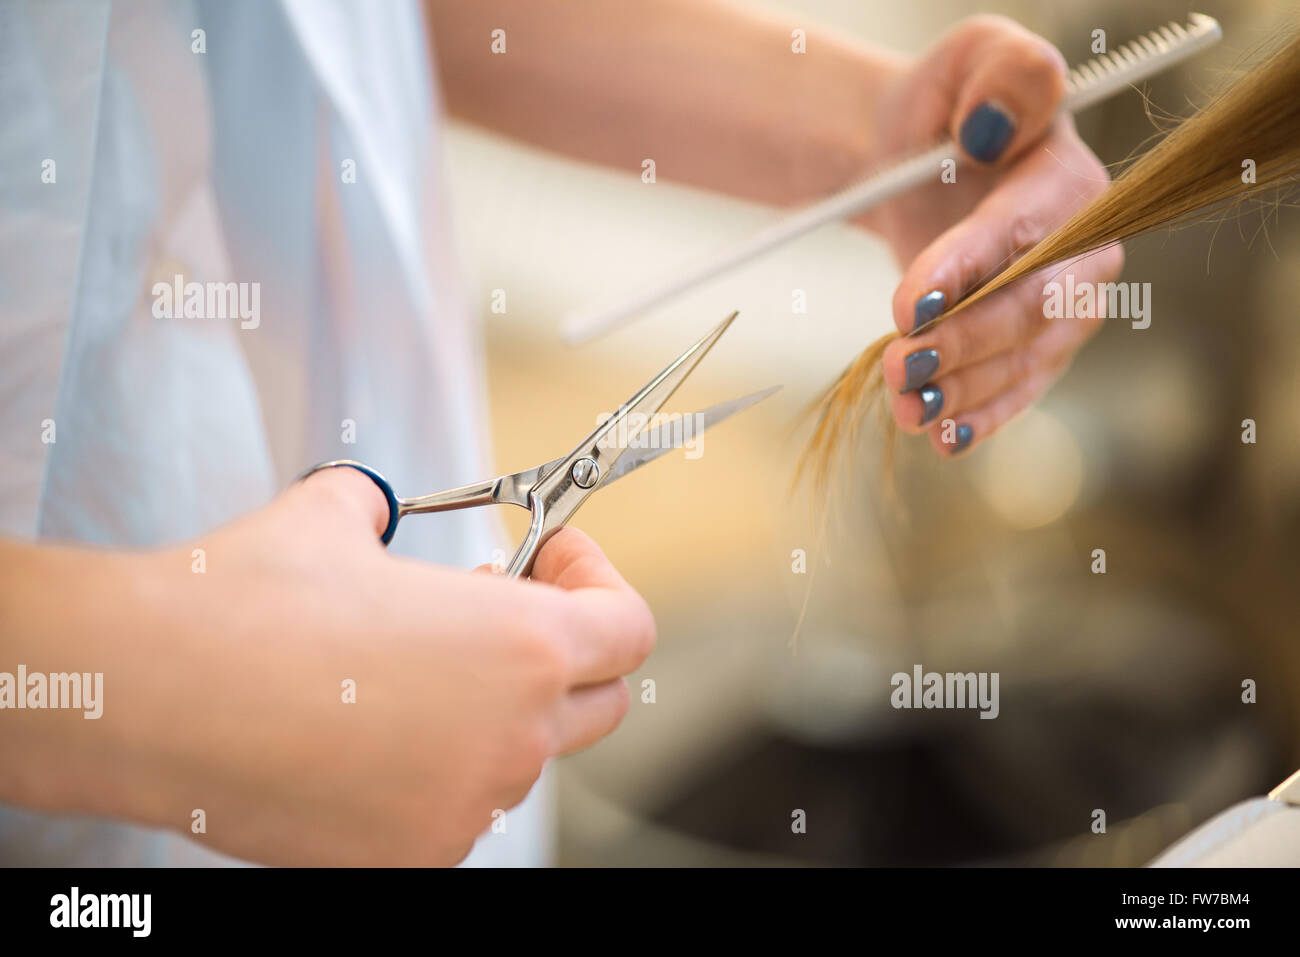 Professional hairdresser cutting hair of her client - Stock Image